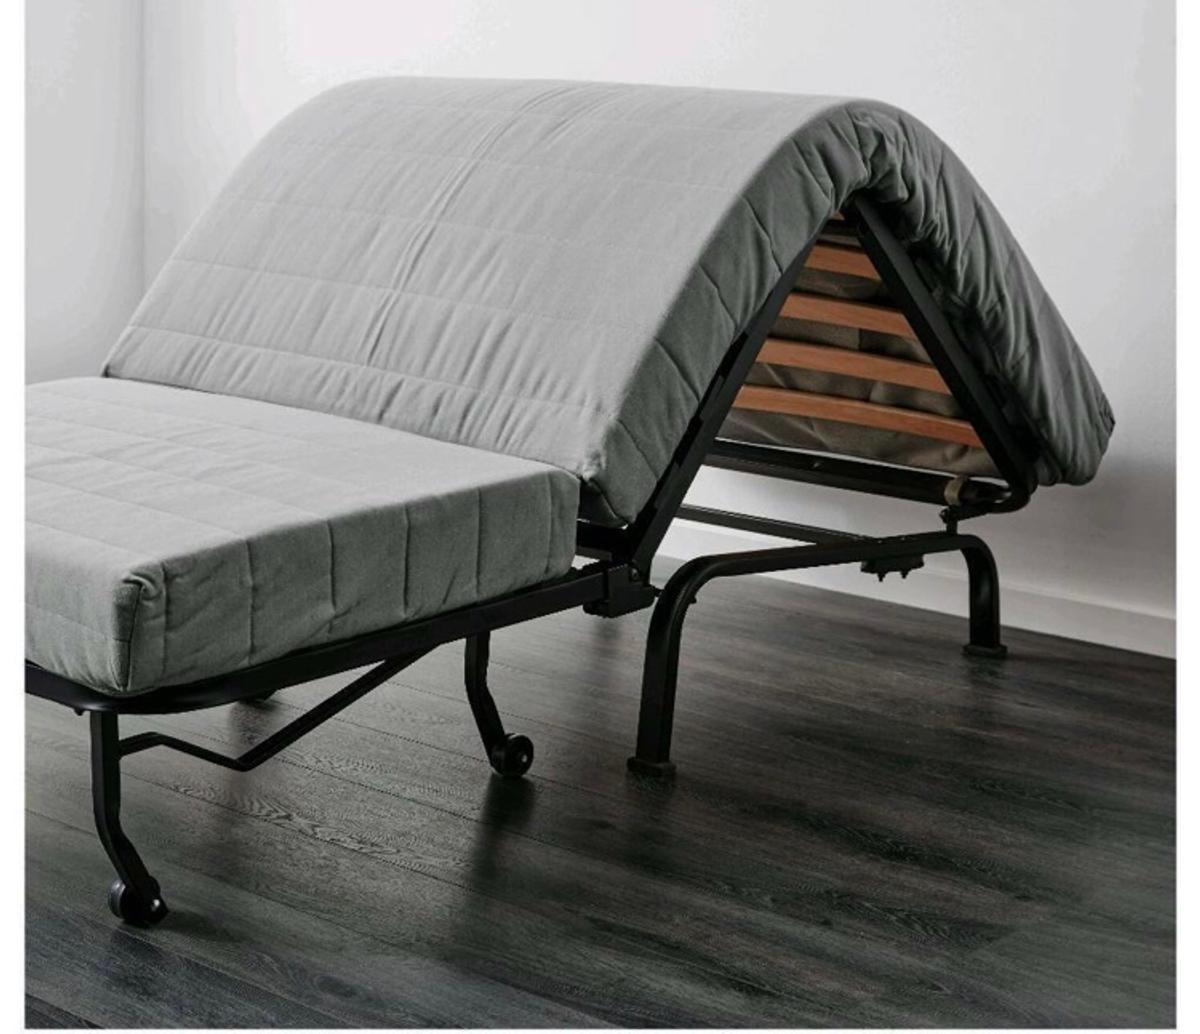 Picture of: Ikea Lycksele Futon Single Chair Bed In N22 London For 60 00 For Sale Shpock